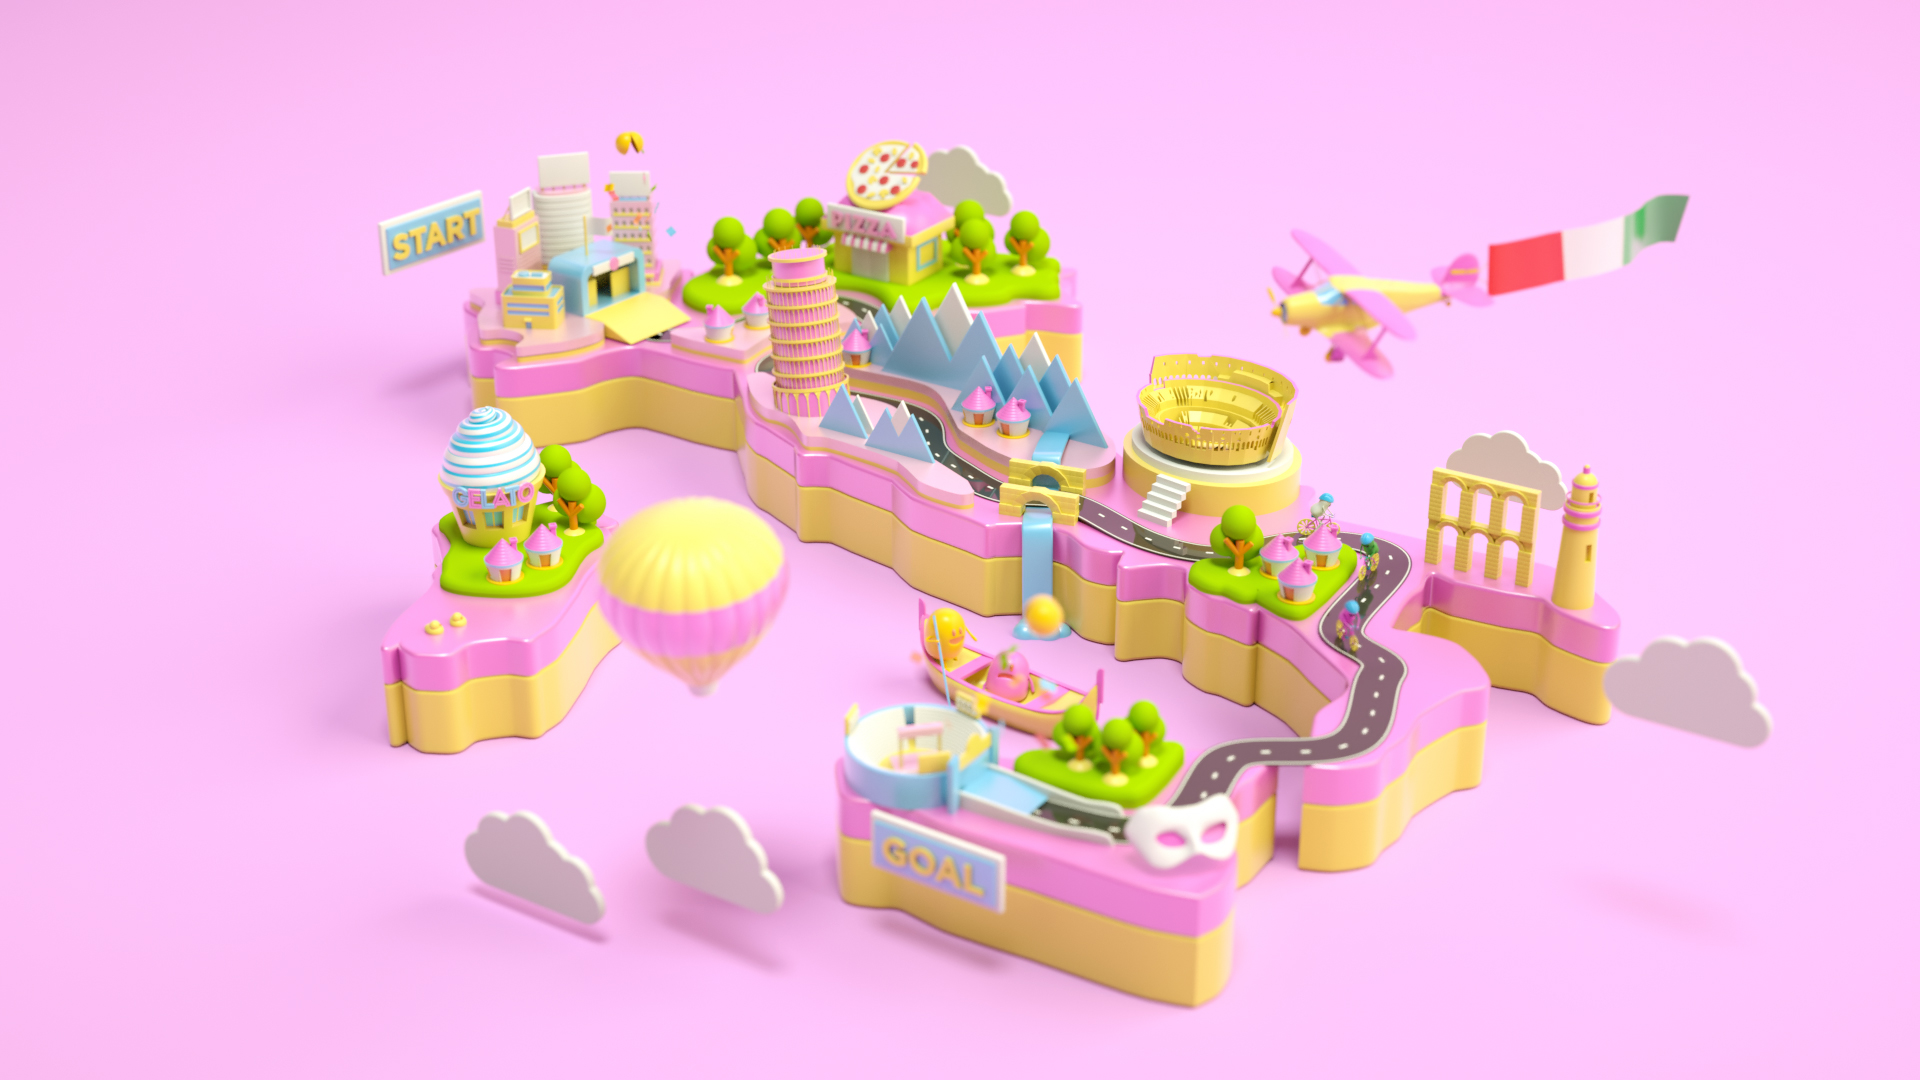 Illustration & Digital Art: 3D Works by Ryogo Toyoda